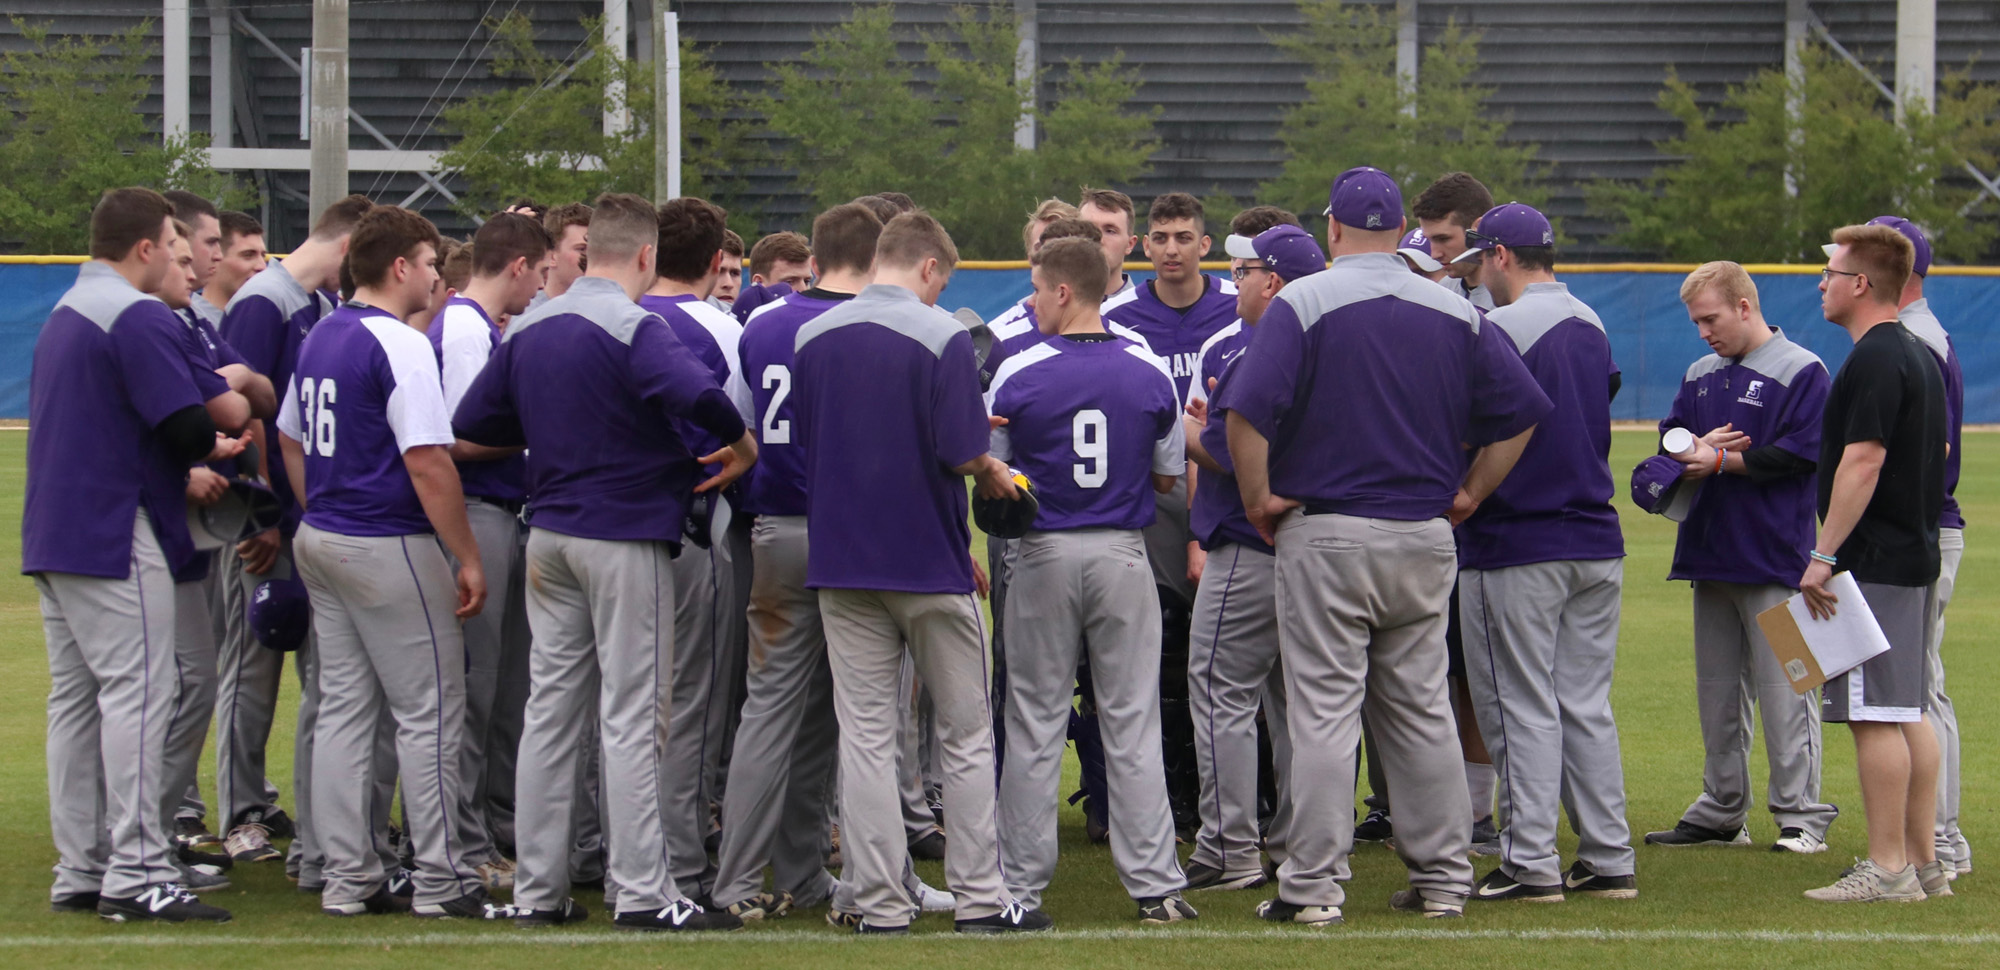 UPDATE: Baseball's Game With Muhlenberg Moved To March 27 At Keystone